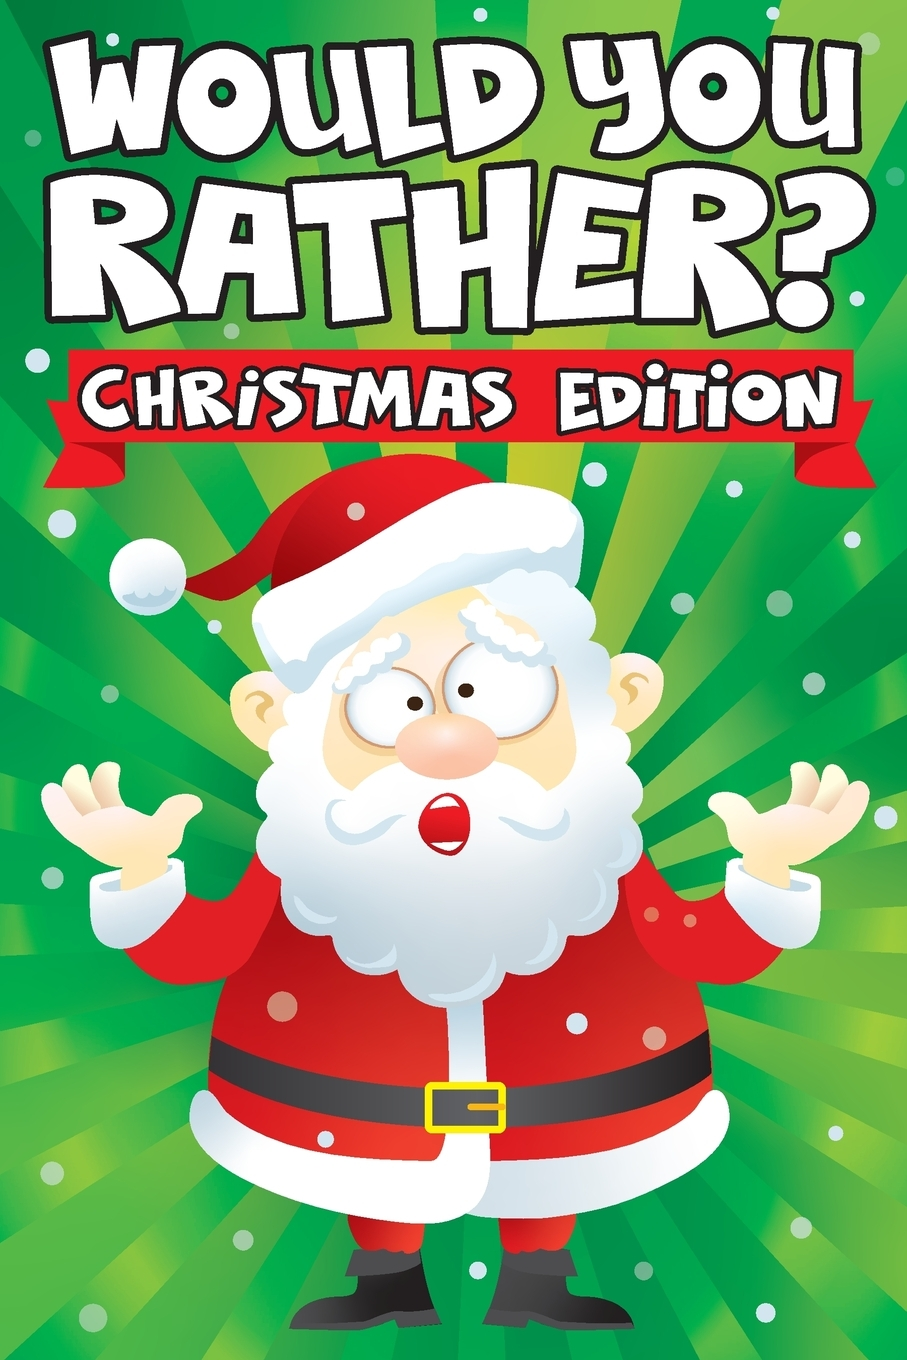 Would You Rather Christmas Game Stocking Fillers Box Games Eve Party Boy Girl